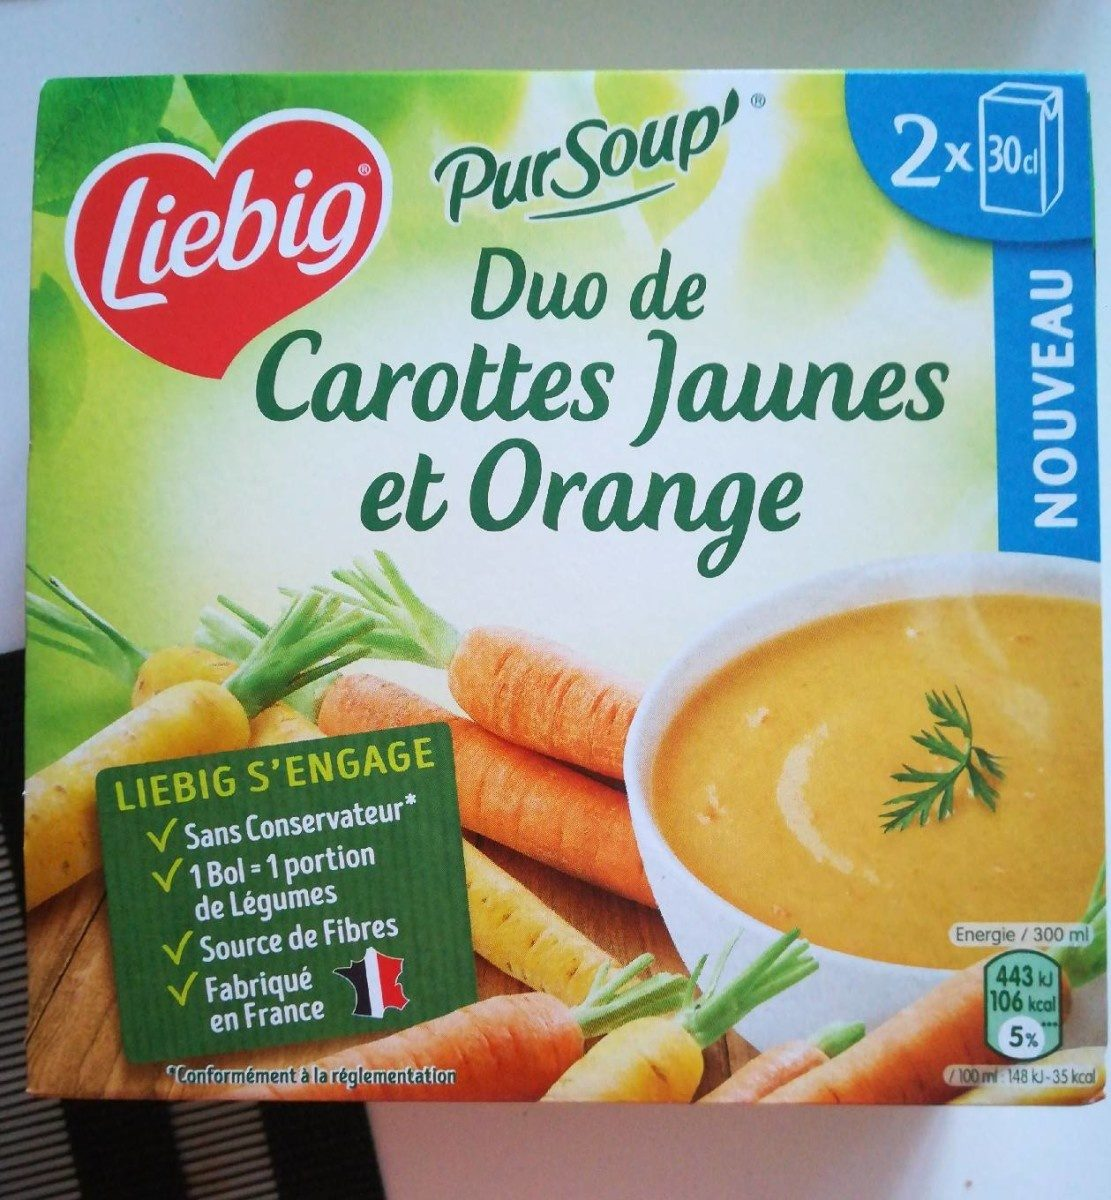 Duo de Carottes Jaunes et Orange - Product